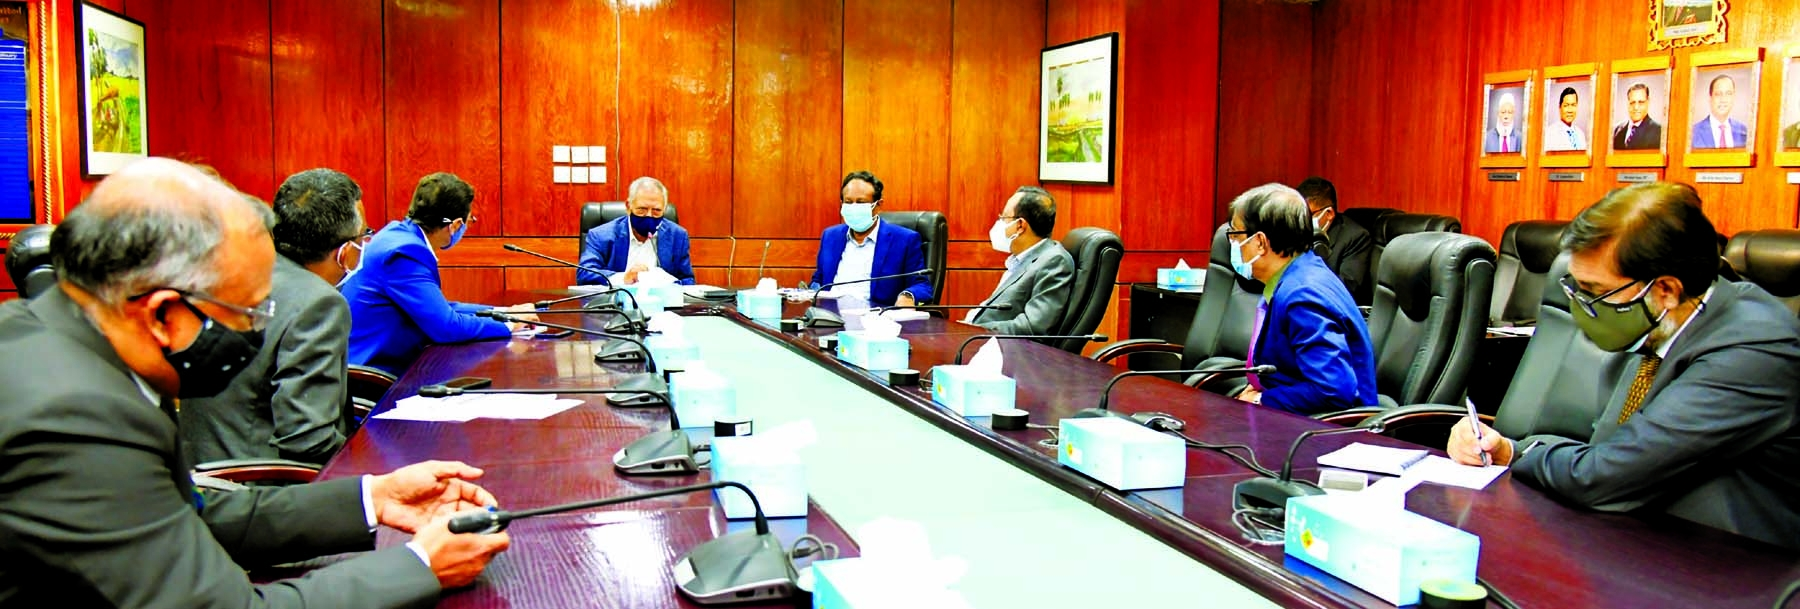 Morshed Alam, MP, Chairman of the Board of Directors of Mercantile Bank Limited, presiding over a discussion meeting with the Divisional Heads of the head office at the bank's board room on Sunday. Md. Quamrul Islam Chowdhury, Managing Director & CEO and senior officials of the bank were present.